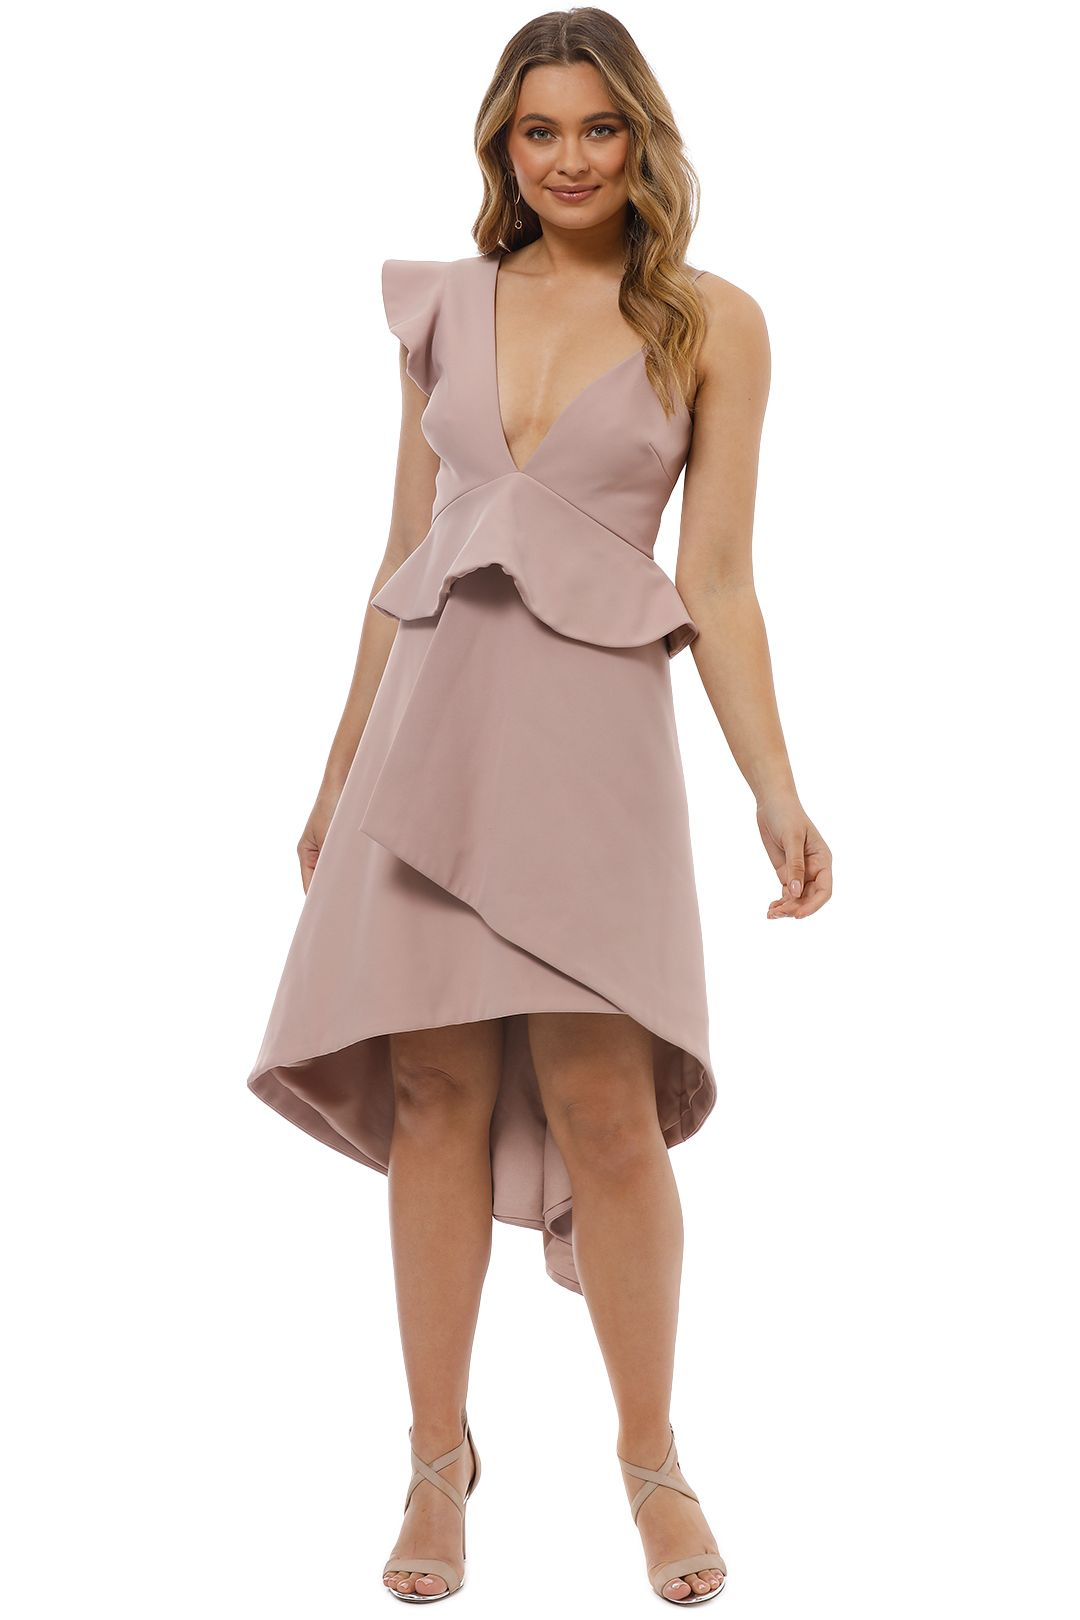 Talulah - The Sisters Asymmetrical Midi Dress - Pink - Front